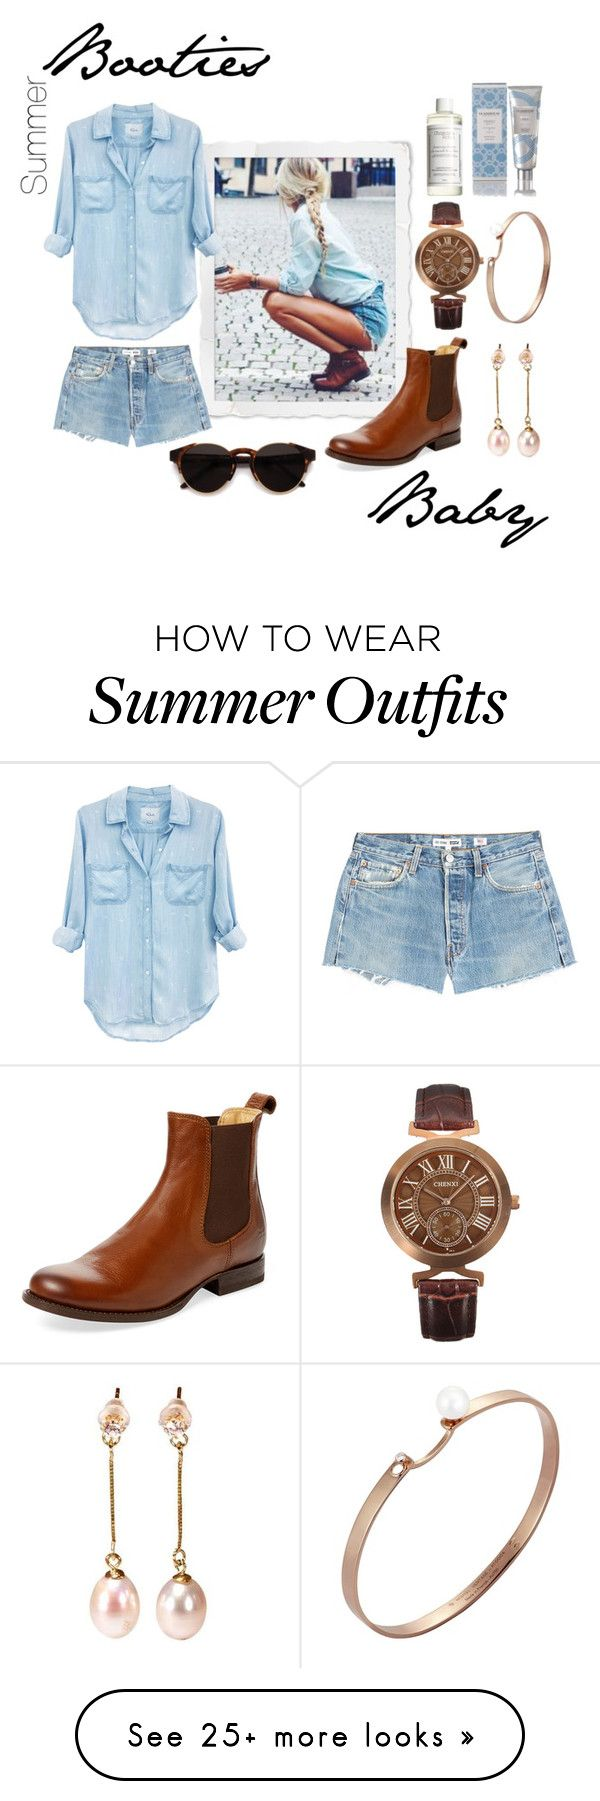 0527b56fd5d0 Summer outfits summer booties onenakedewe on polyvore featuring birkenstock  fry jpg 600x1801 Polyvore birkenstock outfit